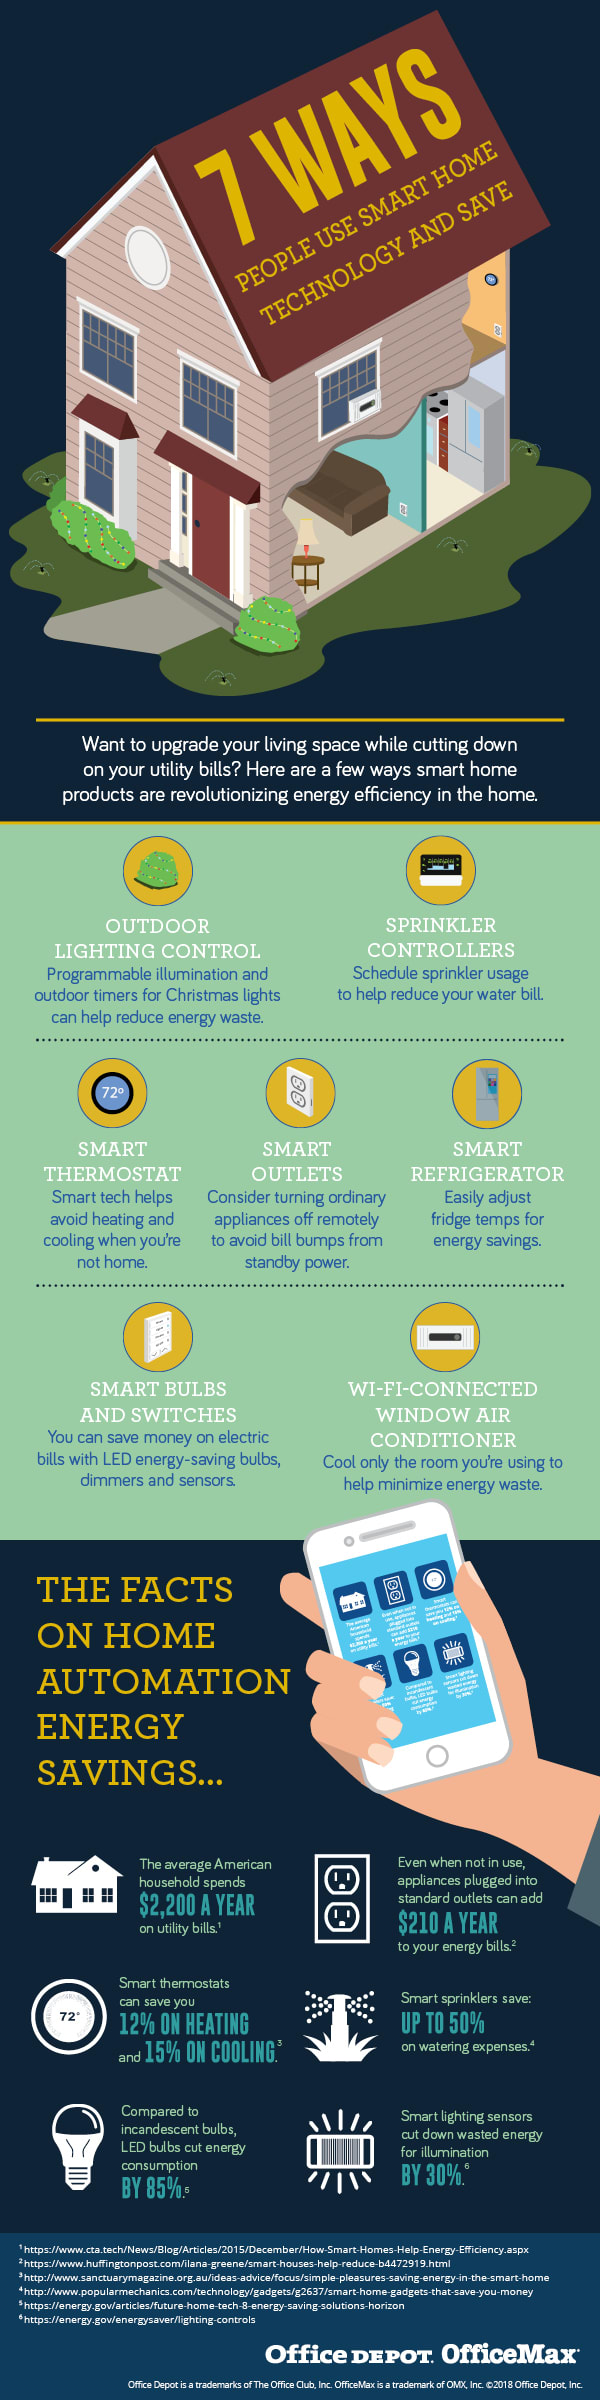 7 Ways People Use Smart Home Technology and Save Infographic